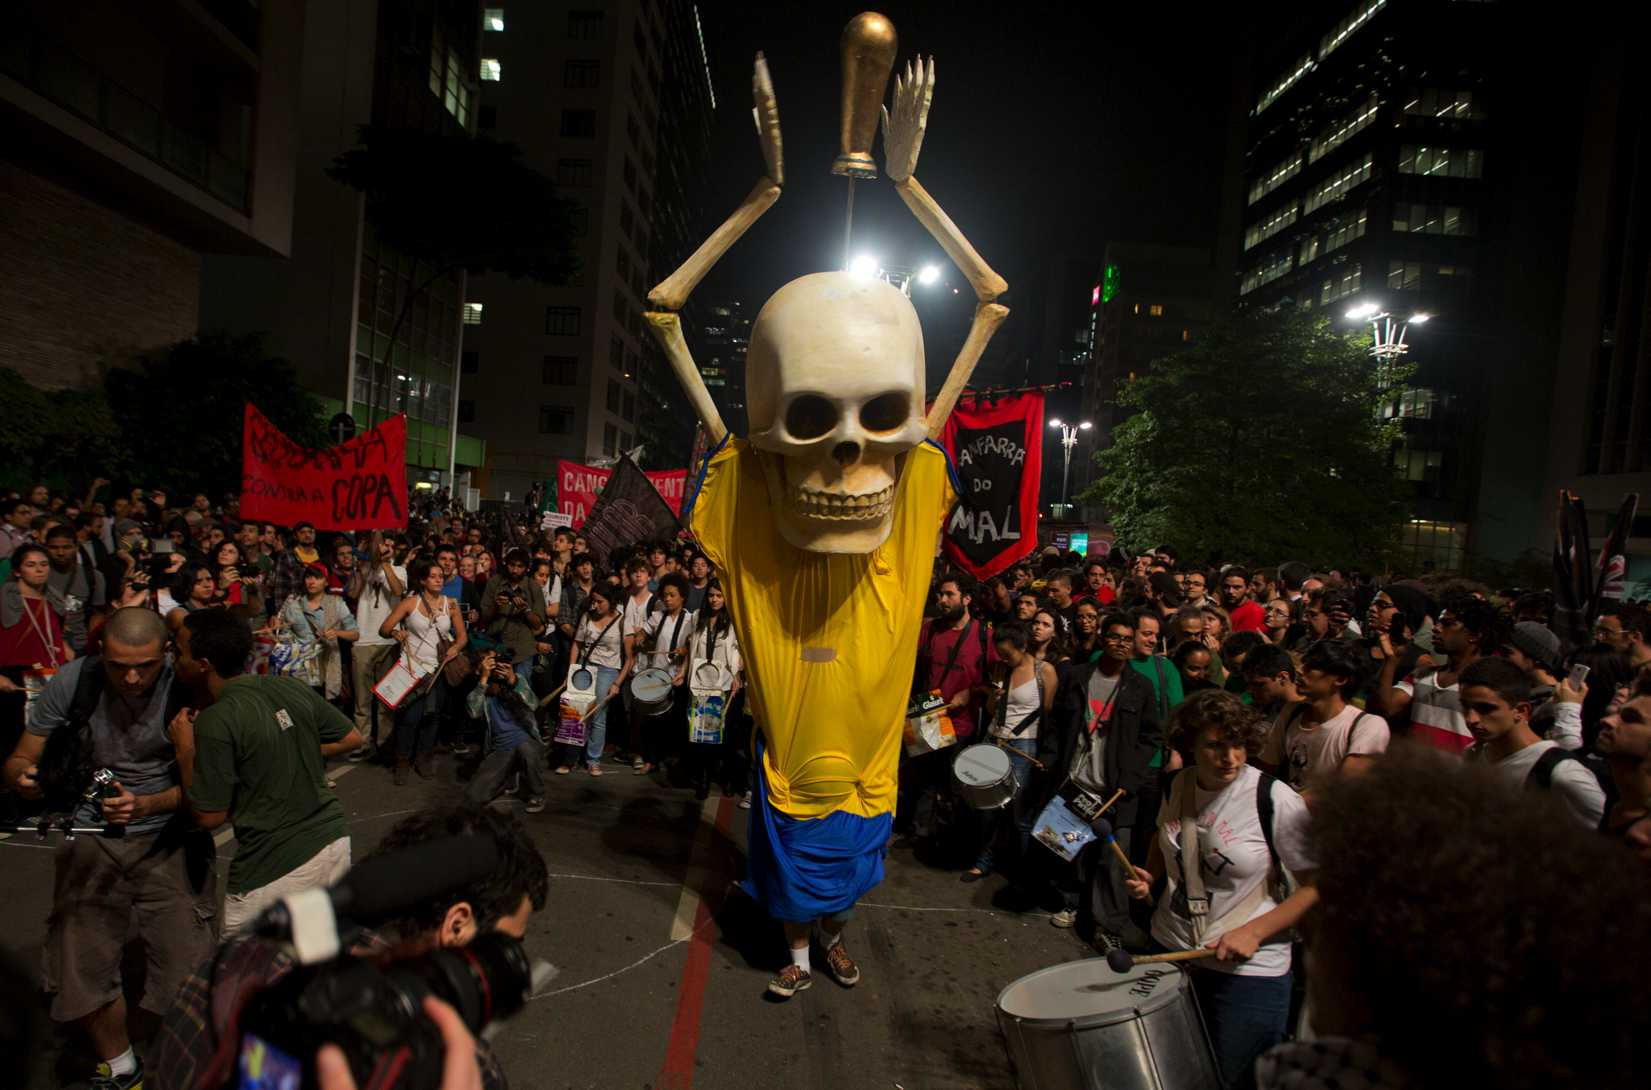 Hundreds of demonstrators protest against money spent on Brazil's World Cup preparations in São Paulo on Thursday, May 15, 2014.